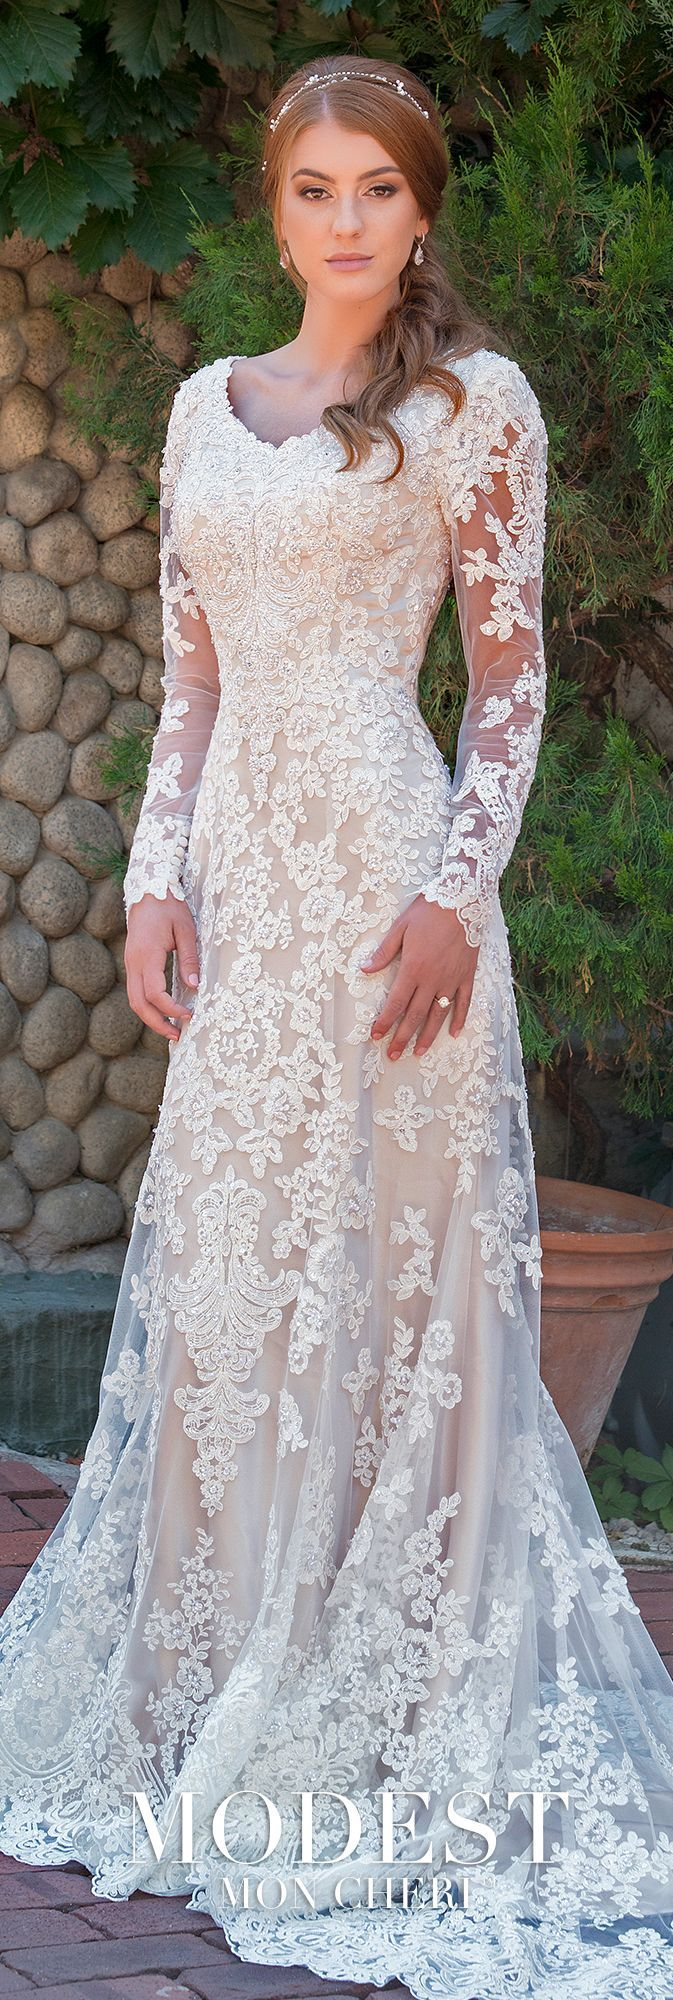 Modest wedding dresses tr tulle and beaded lace fit and flare